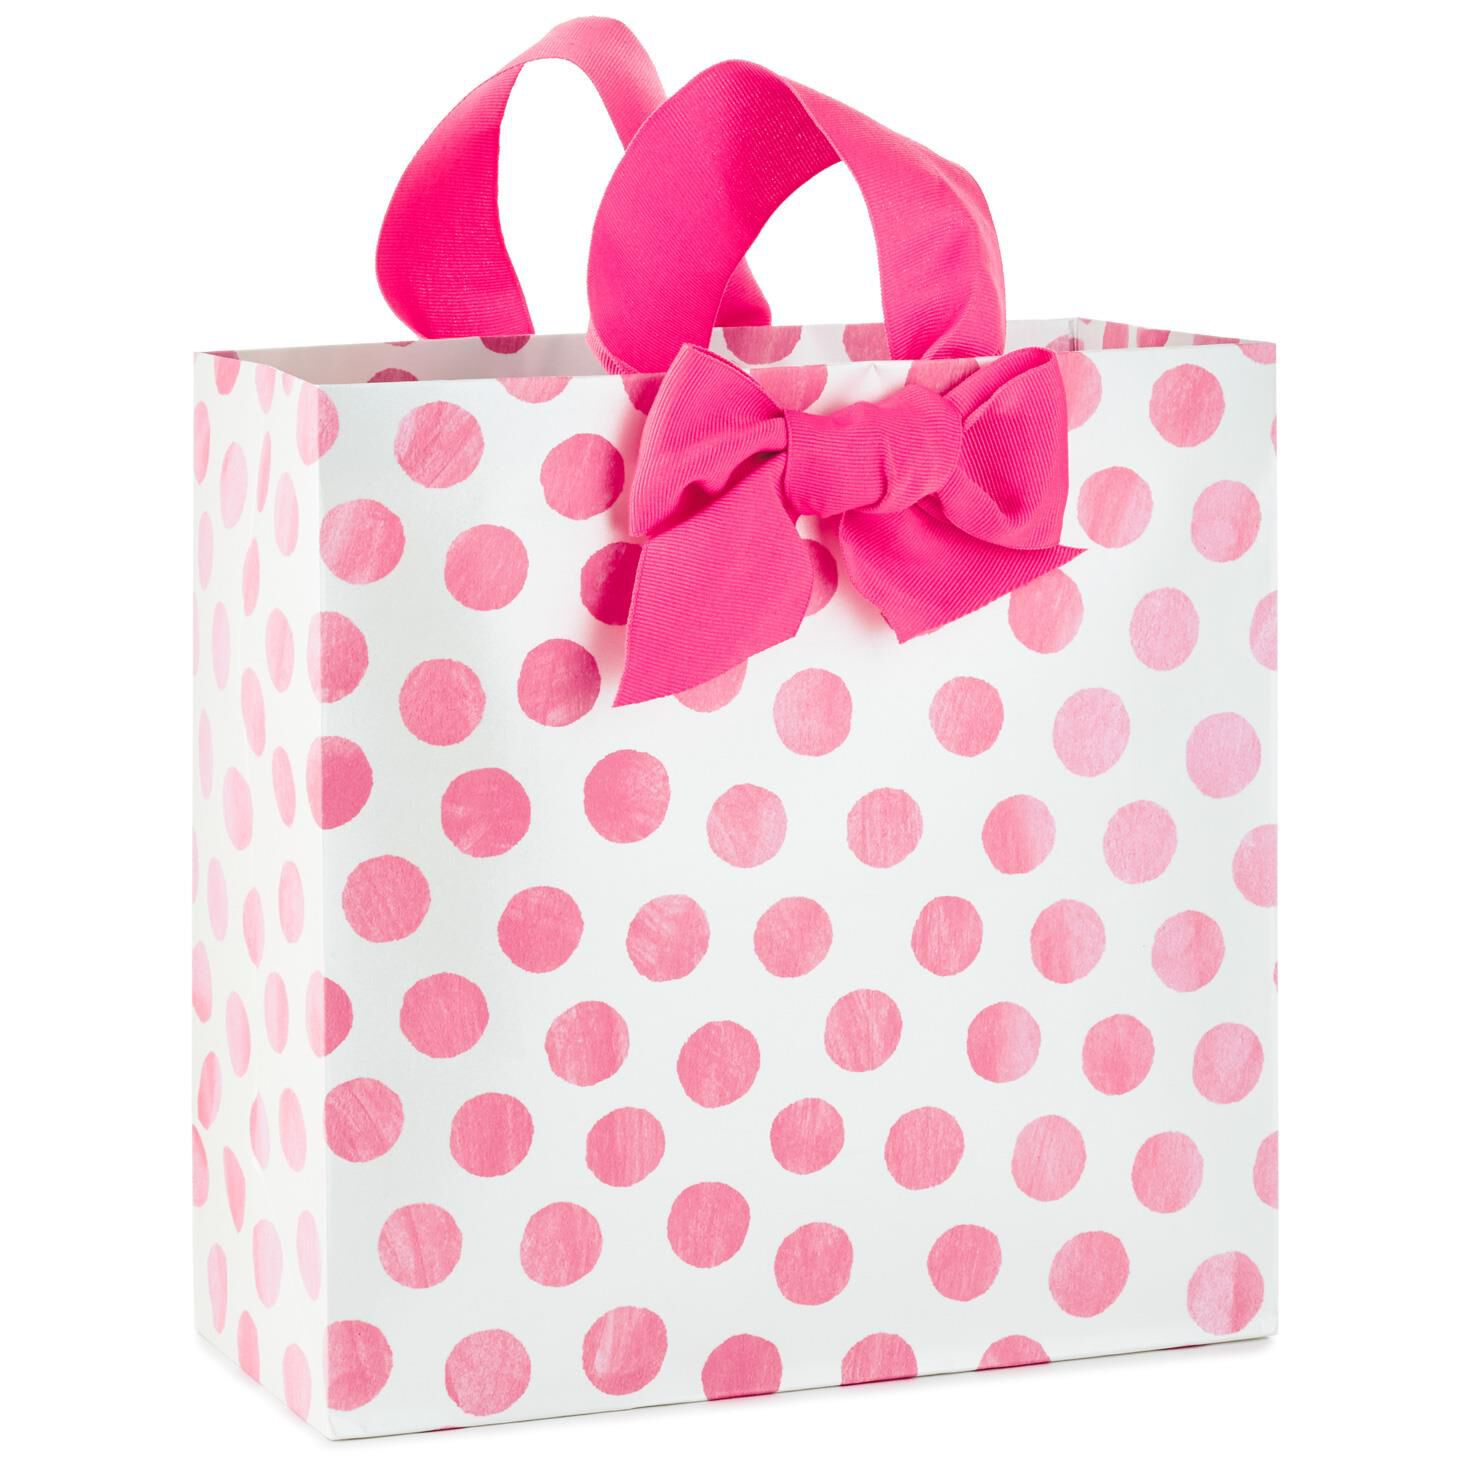 Pink dots large square gift bag 1025 gift bags hallmark negle Choice Image